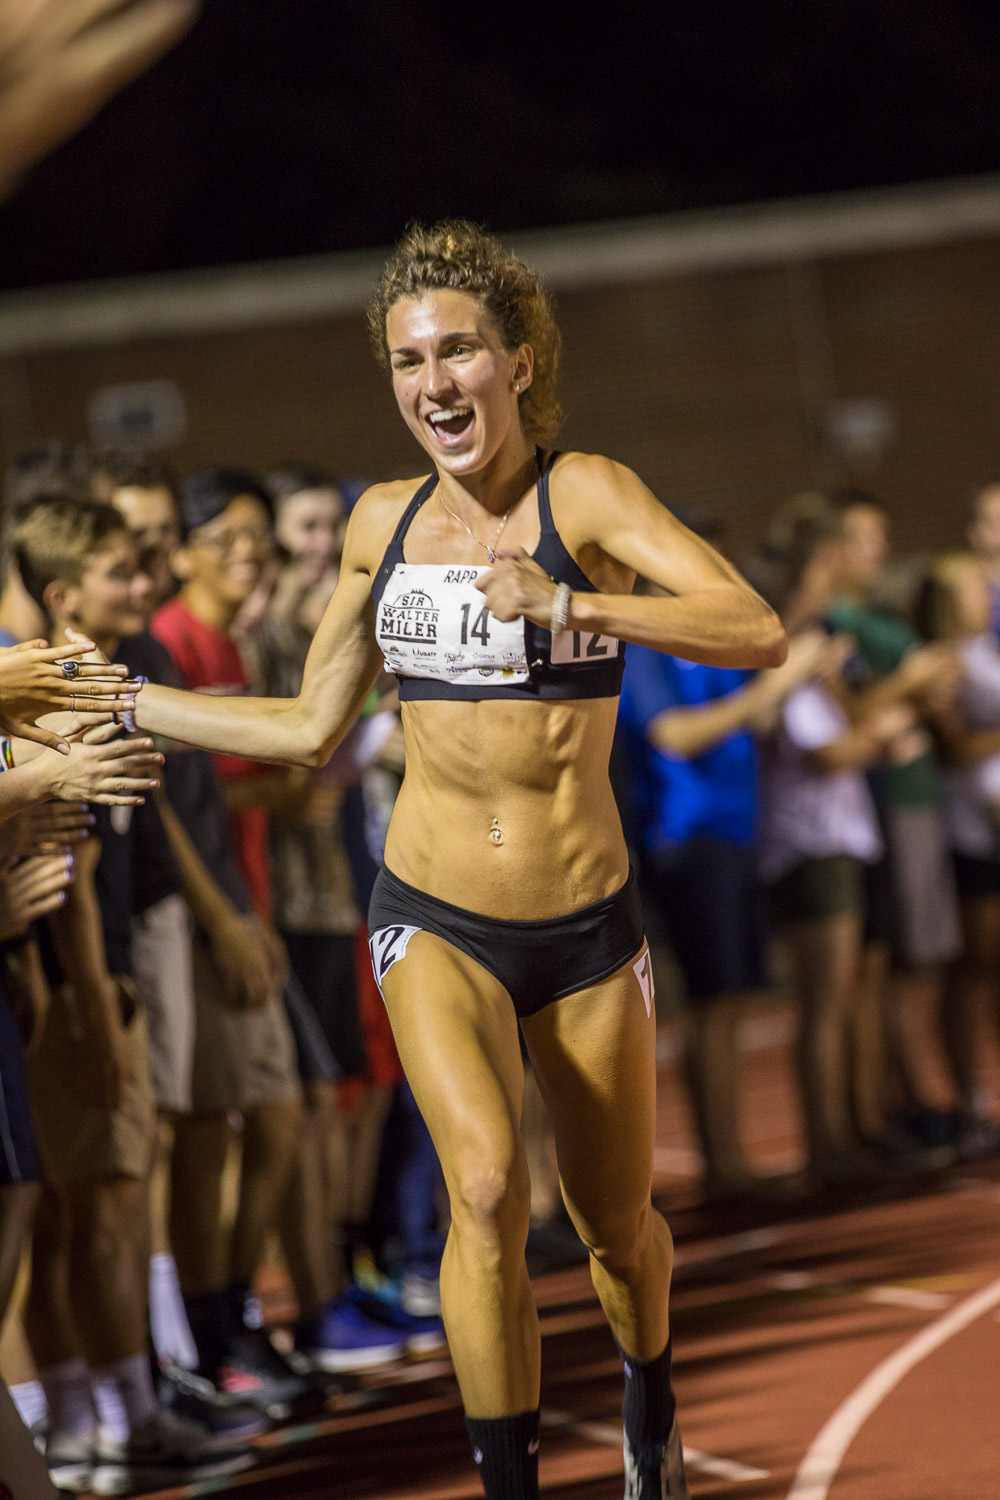 Sarah Rapp gives high fives before the start of the women's elites race